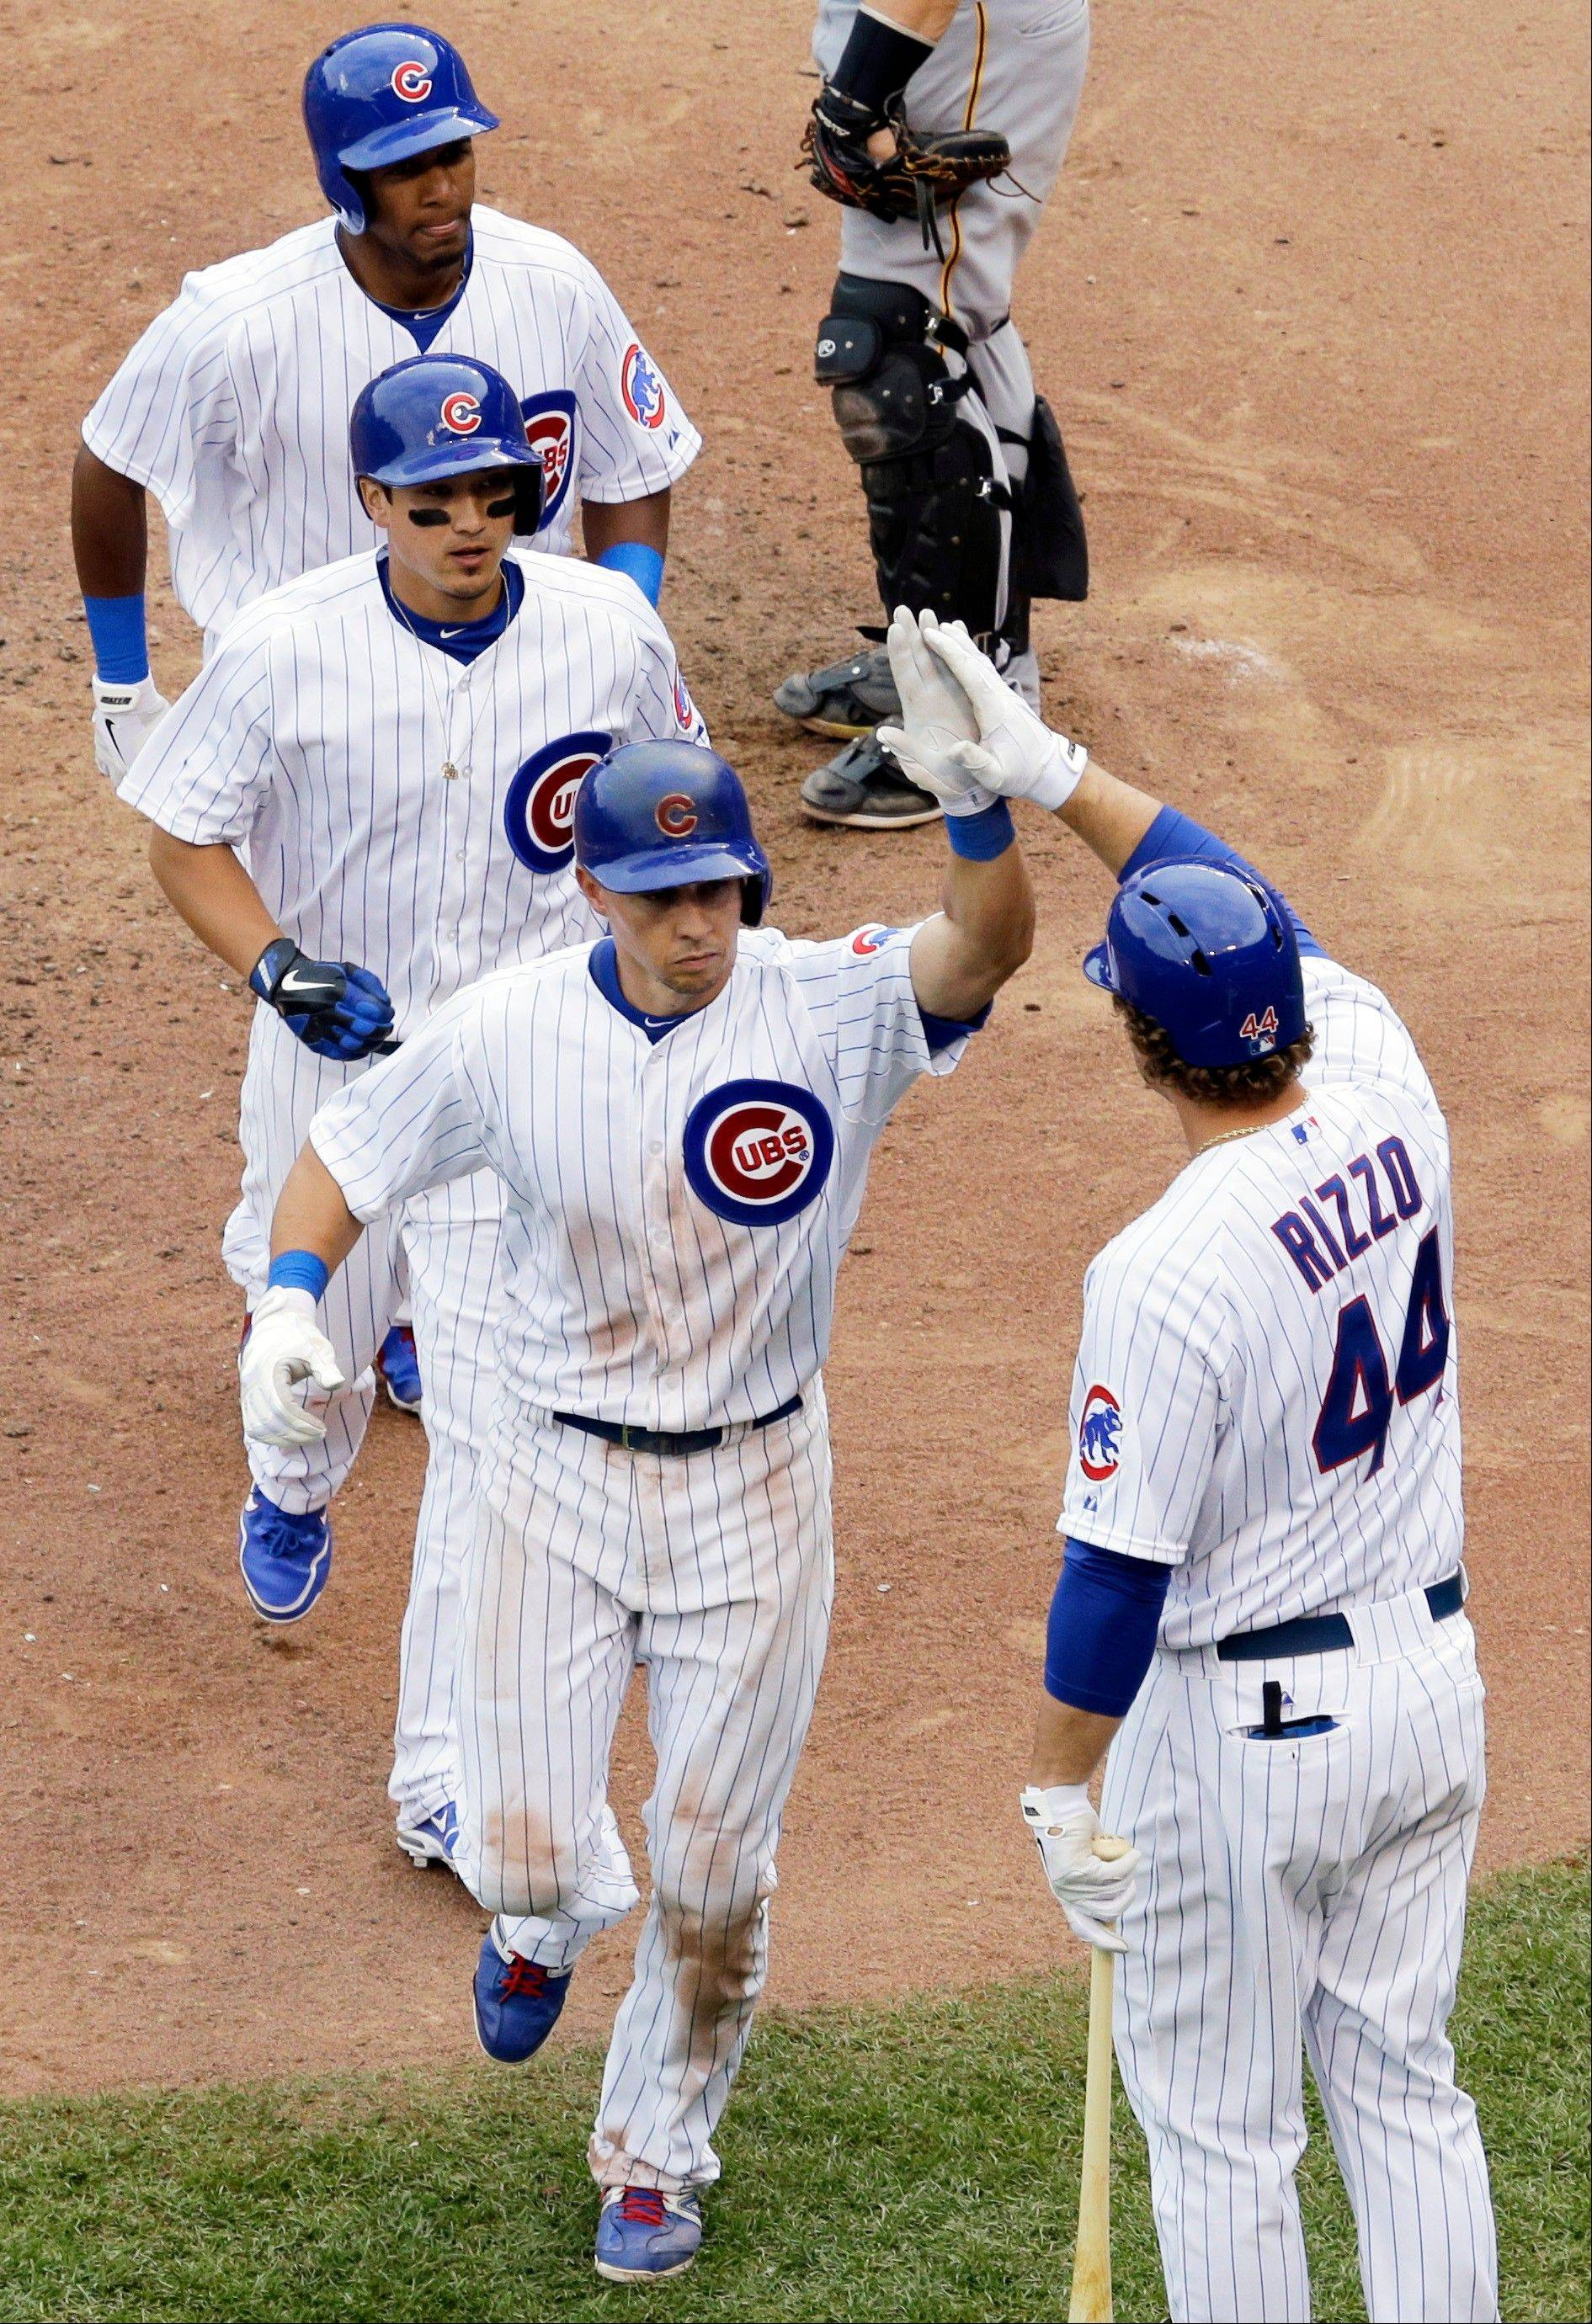 Cubs' Cody Ransom, front left, celebrates with teammate Anthony Rizzo after hitting a three-run home run during the seventh inning of a baseball game against the Pittsburgh Pirates, Sunday, June 9, 2013, in Chicago.